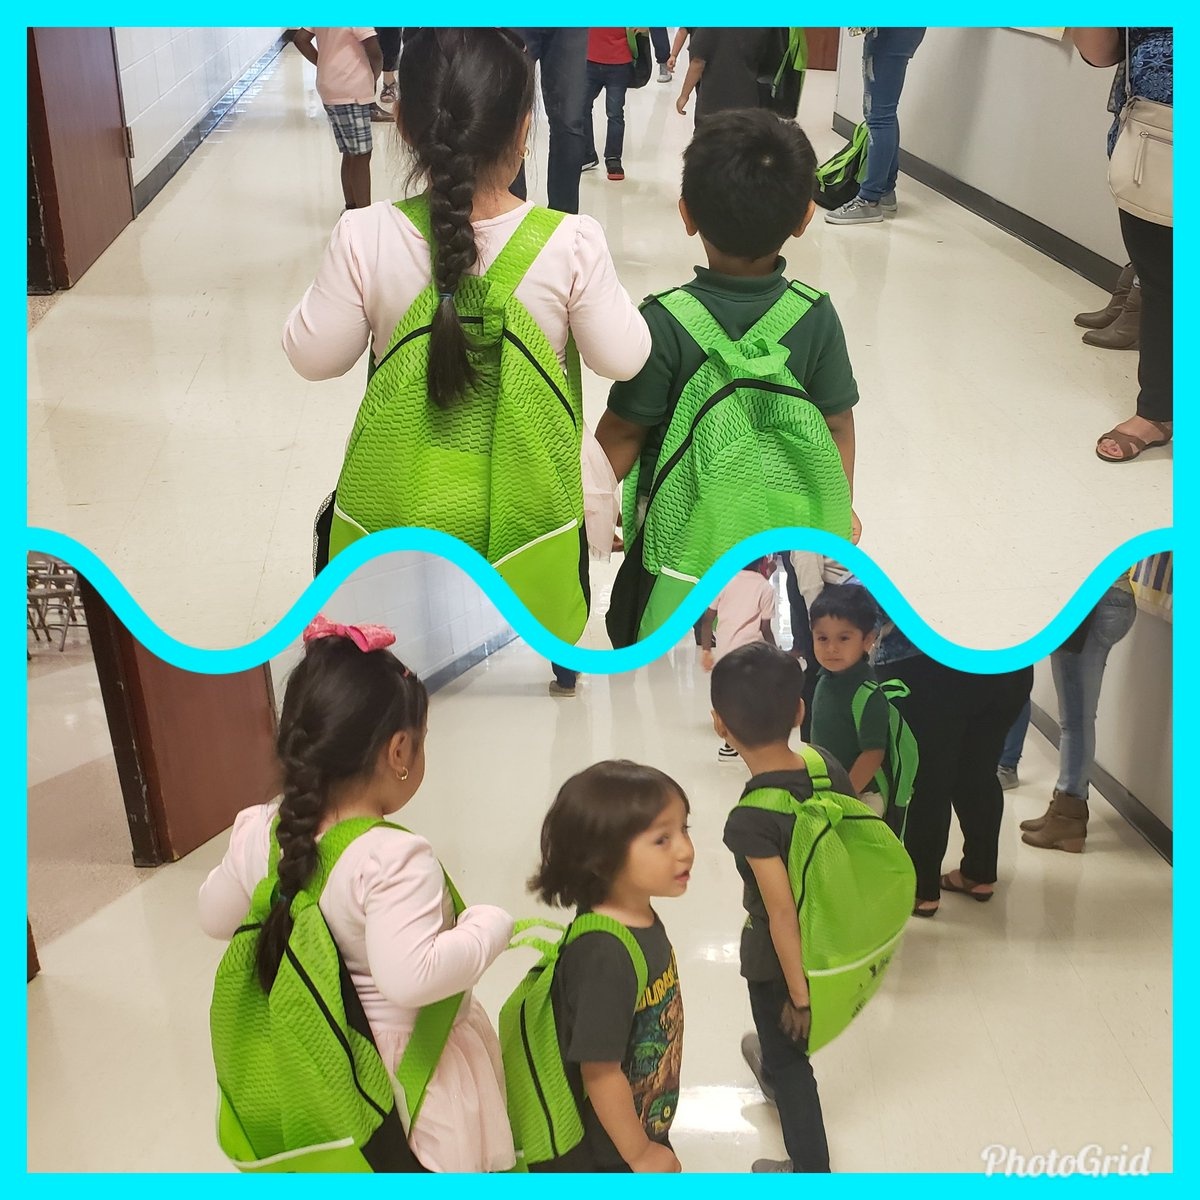 Our future Kindergartners showing off their new backpacks! @HicksTigers @Alief_Fame #WeAreHicksElem #aliefmission #AliefRoundUp2019